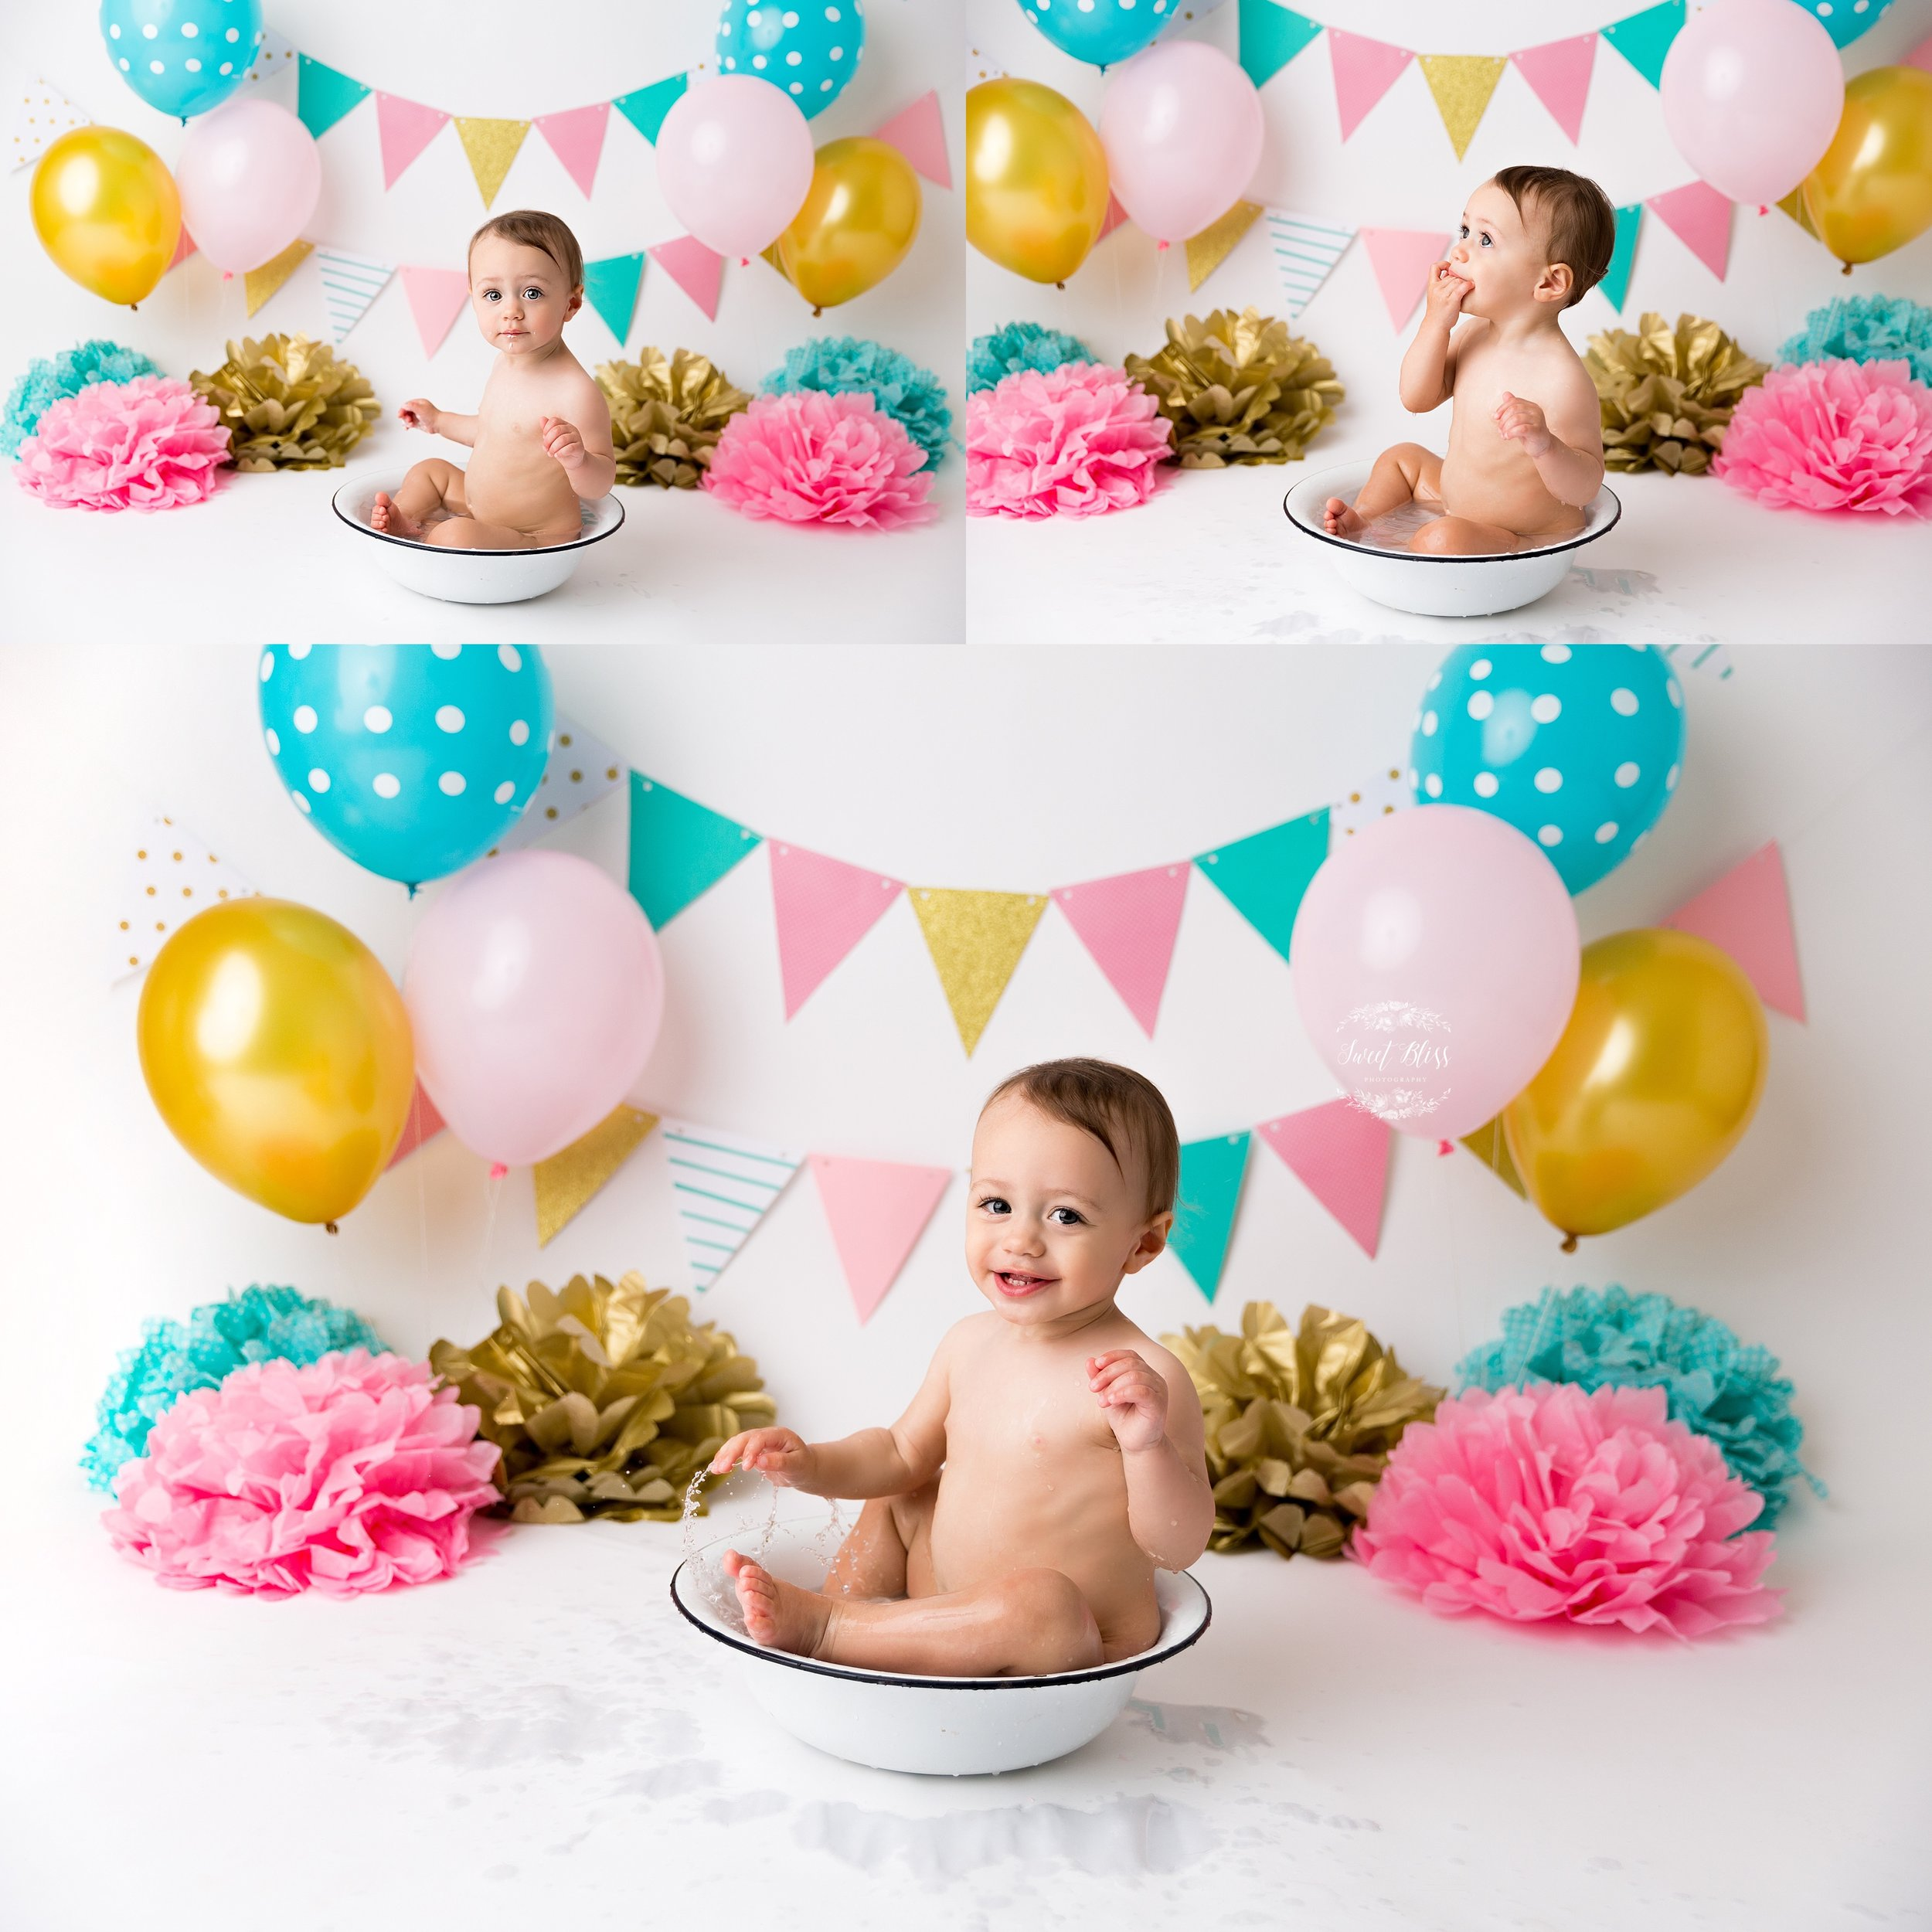 Cakesmash_SweetBlissphotography_marylandphotographer-31.jpg